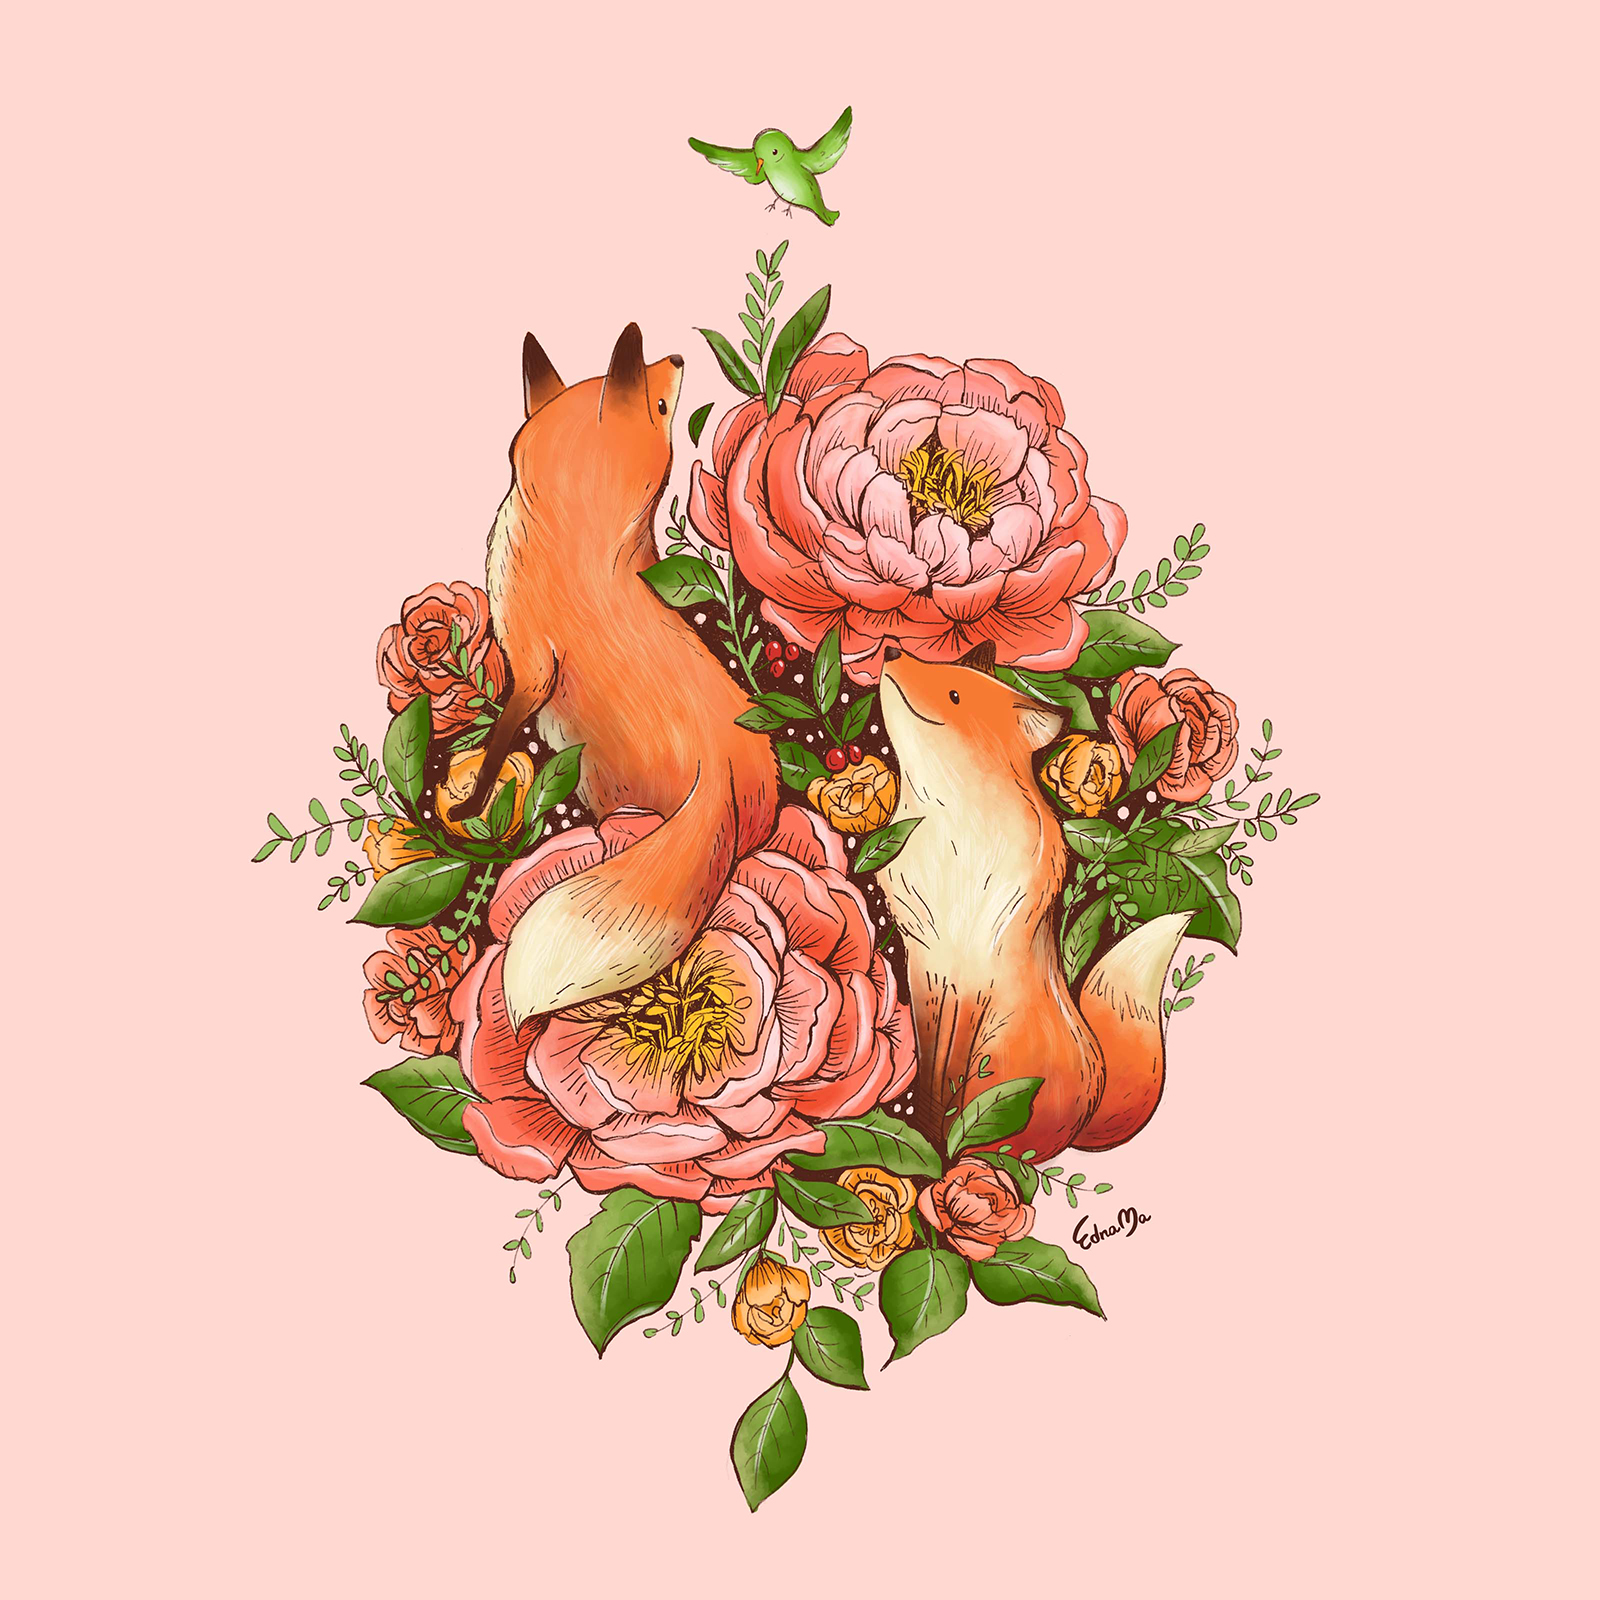 Edna Ma - The Red Foxes and Coral Sunset Peonies.jpg